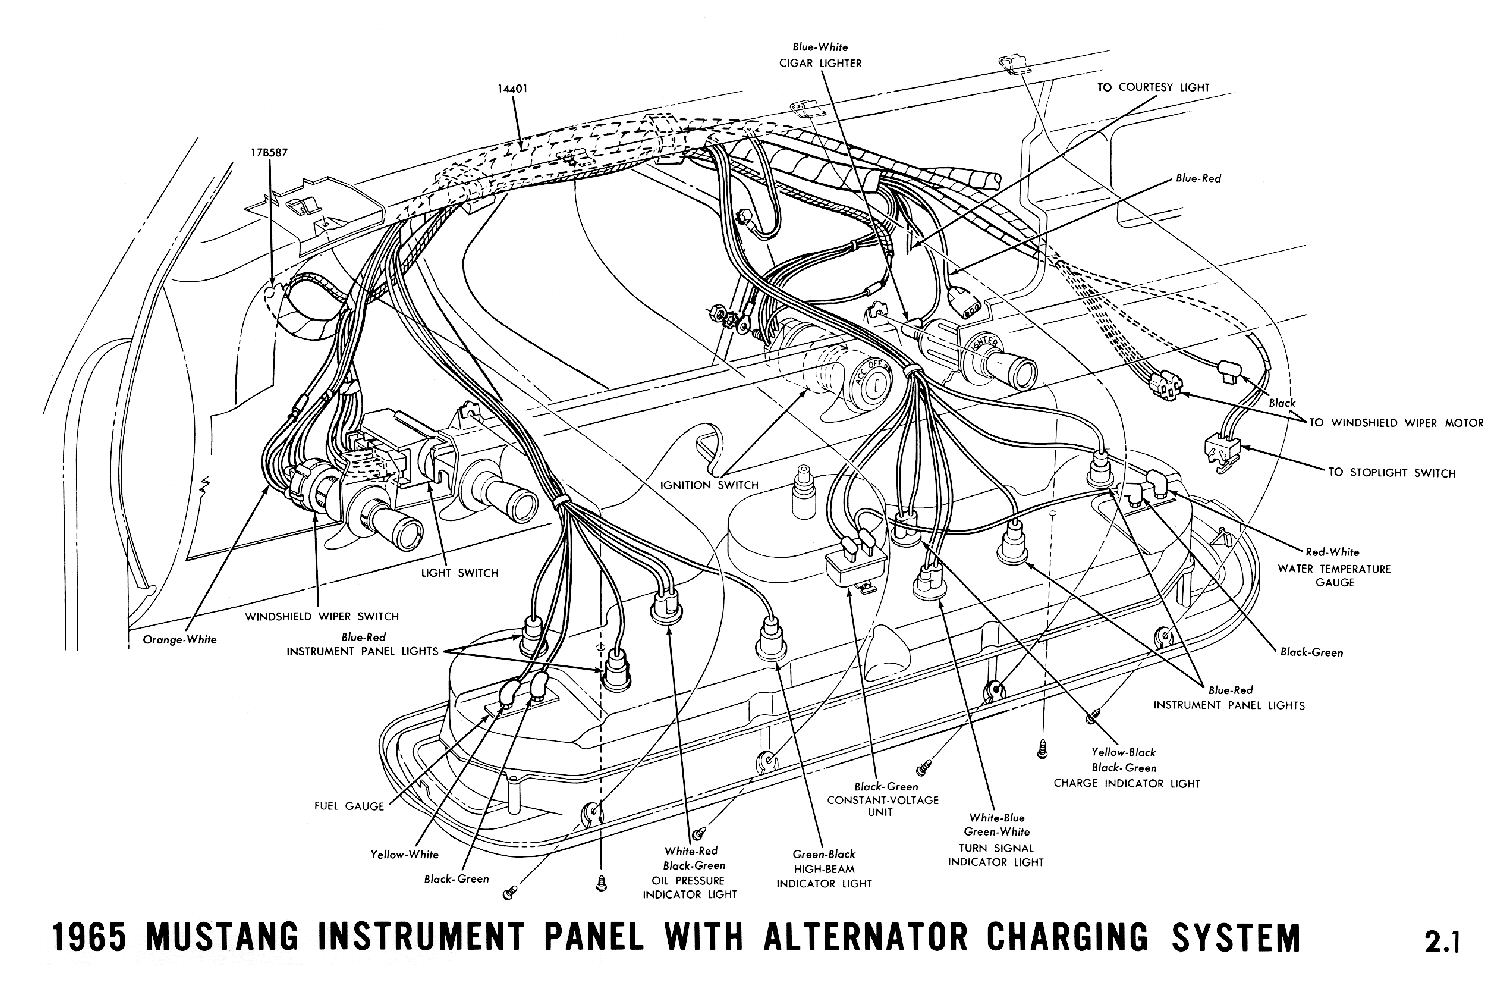 1965a 1965 mustang wiring diagrams average joe restoration mustang wiring harness diagram at bayanpartner.co